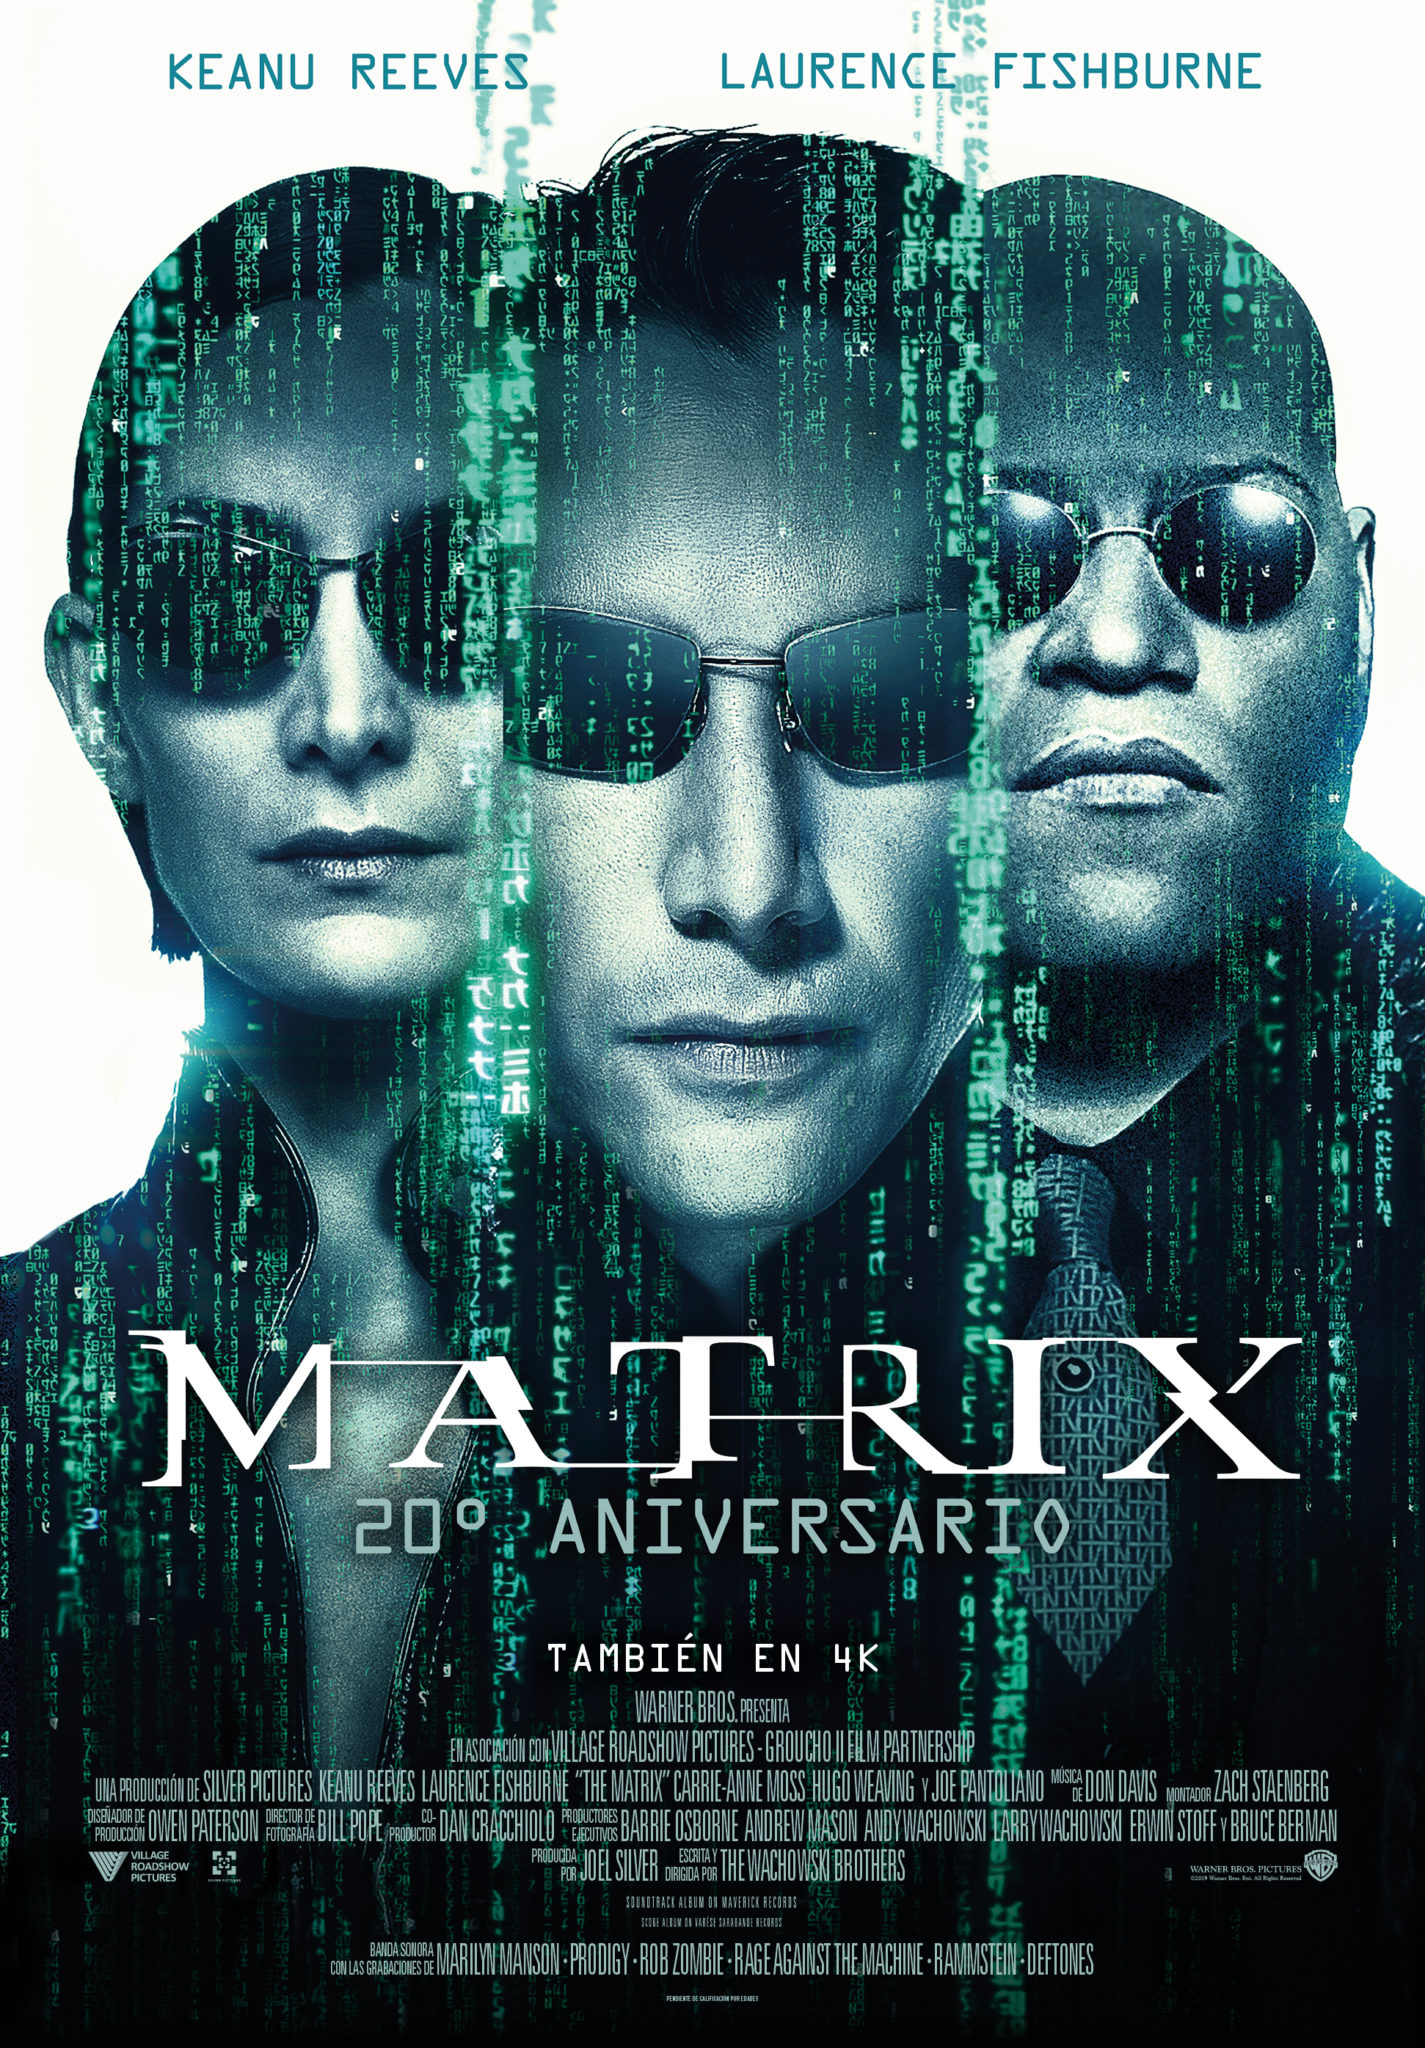 """THE MATRIX"". 20th ANIVERSARIO"